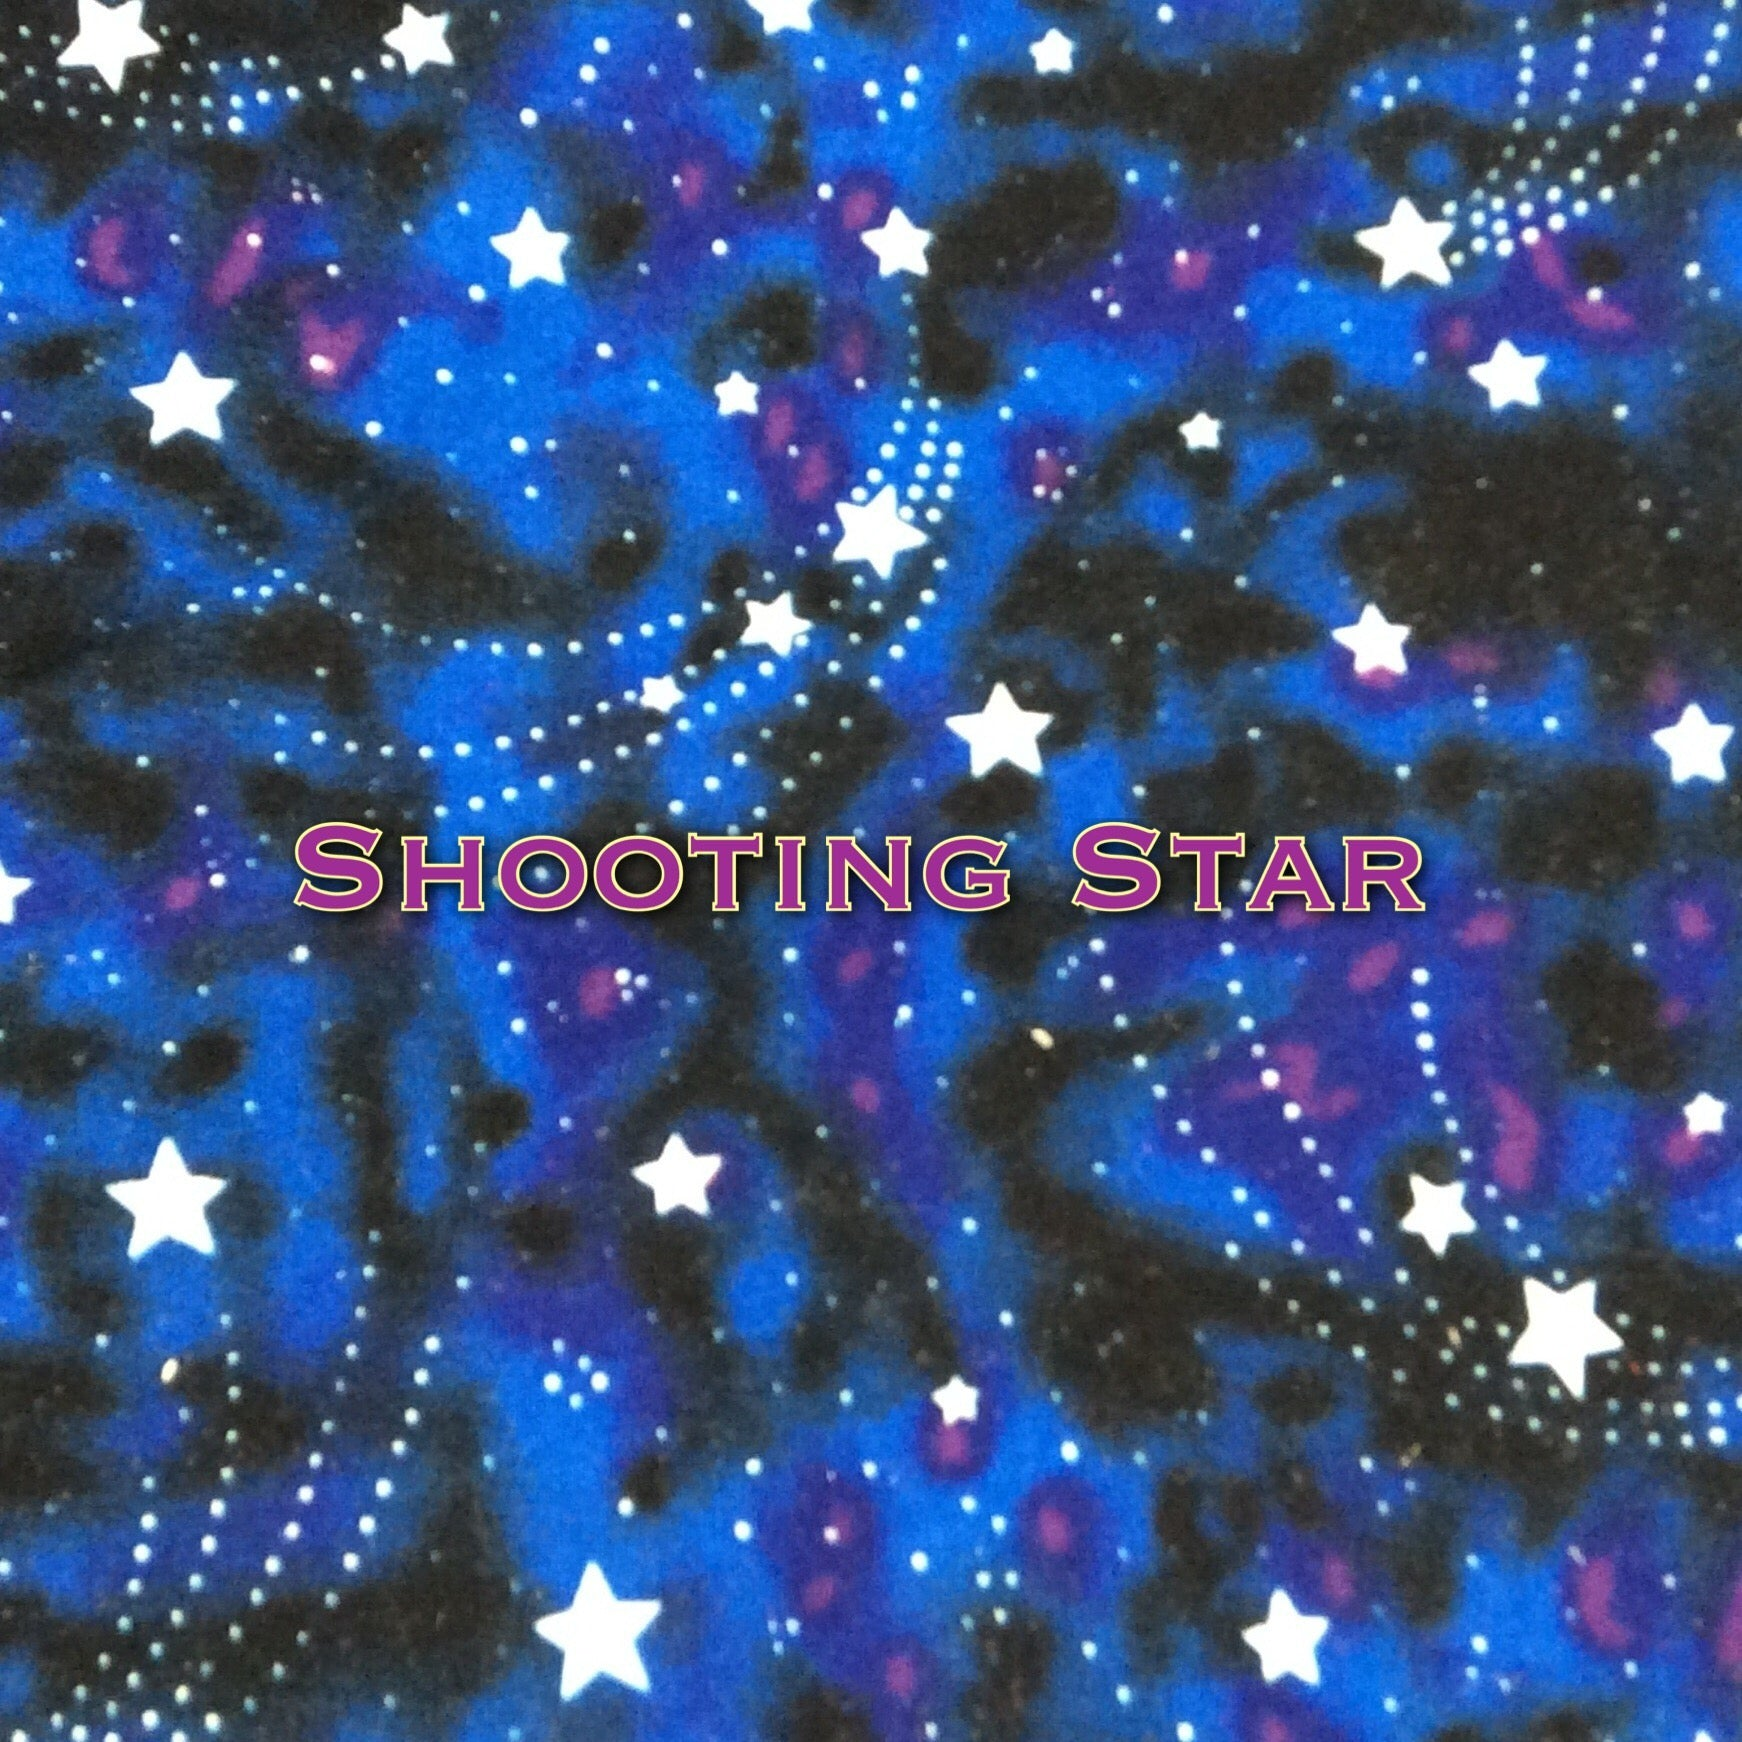 Shooting Star - Quilter's Cotton